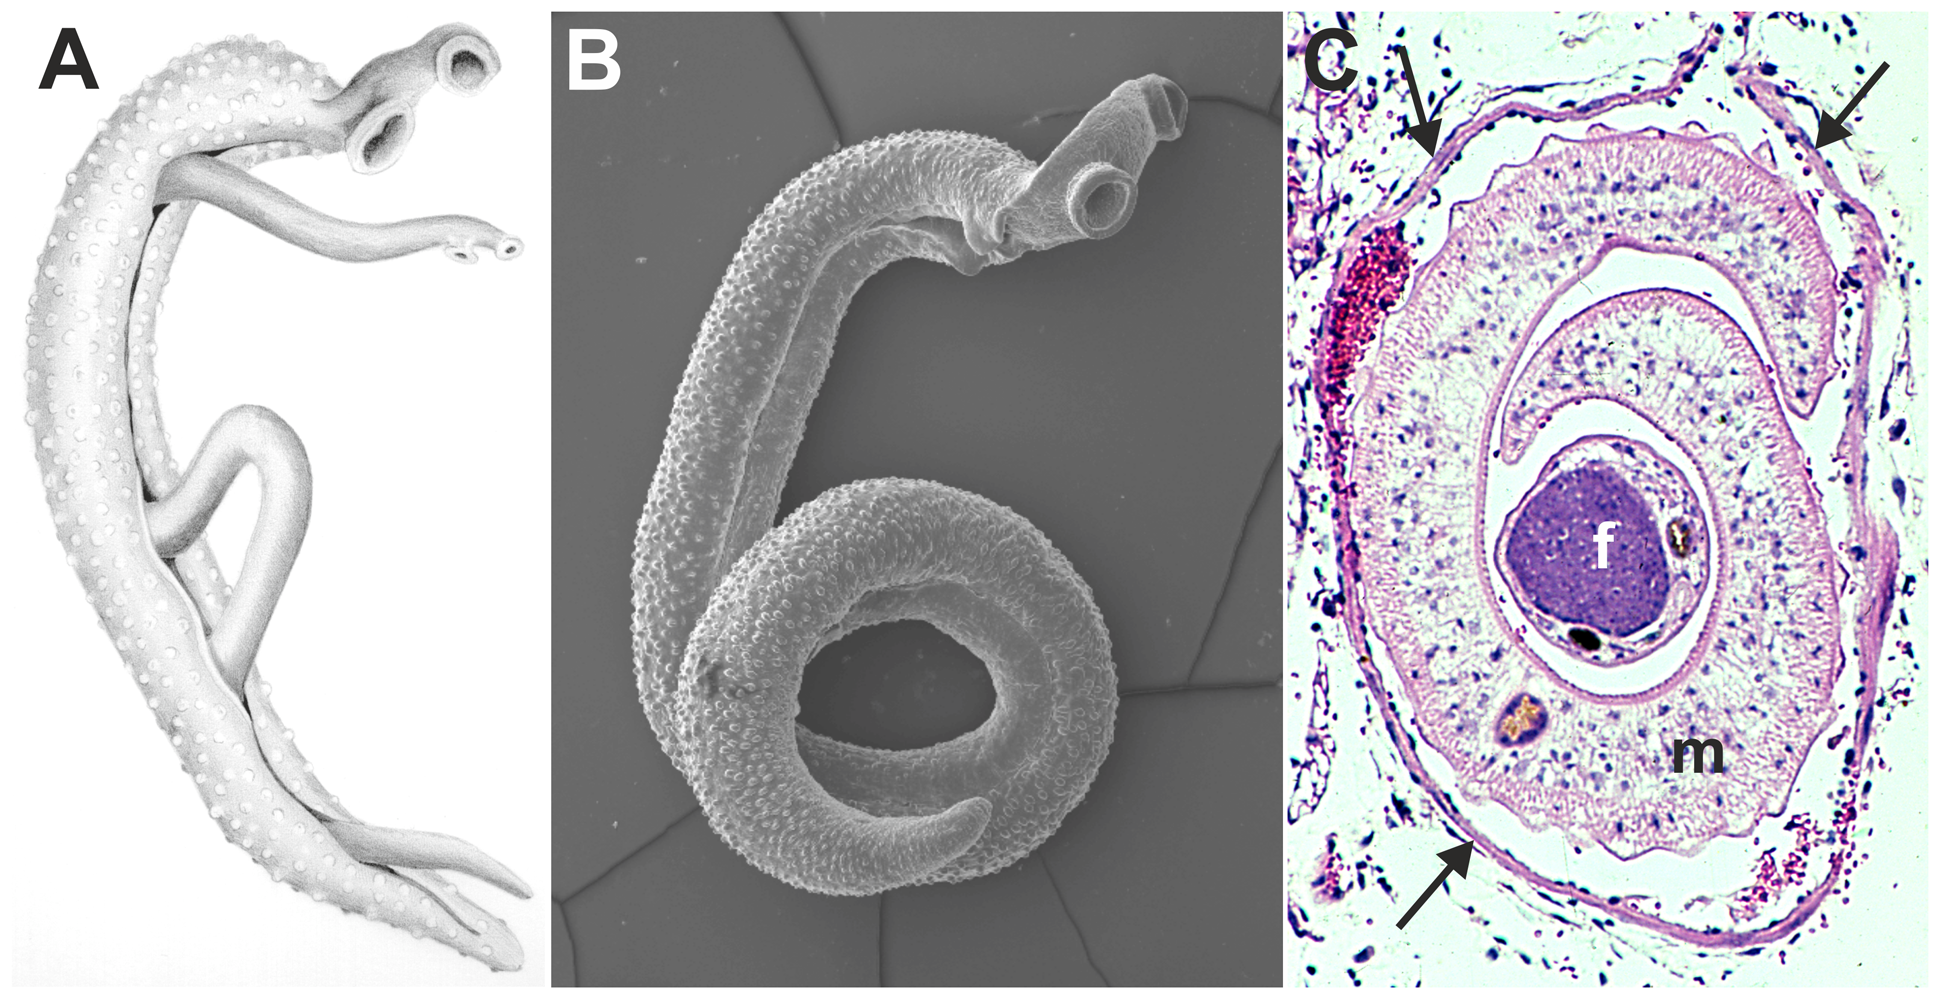 Images of adult schistosomes.